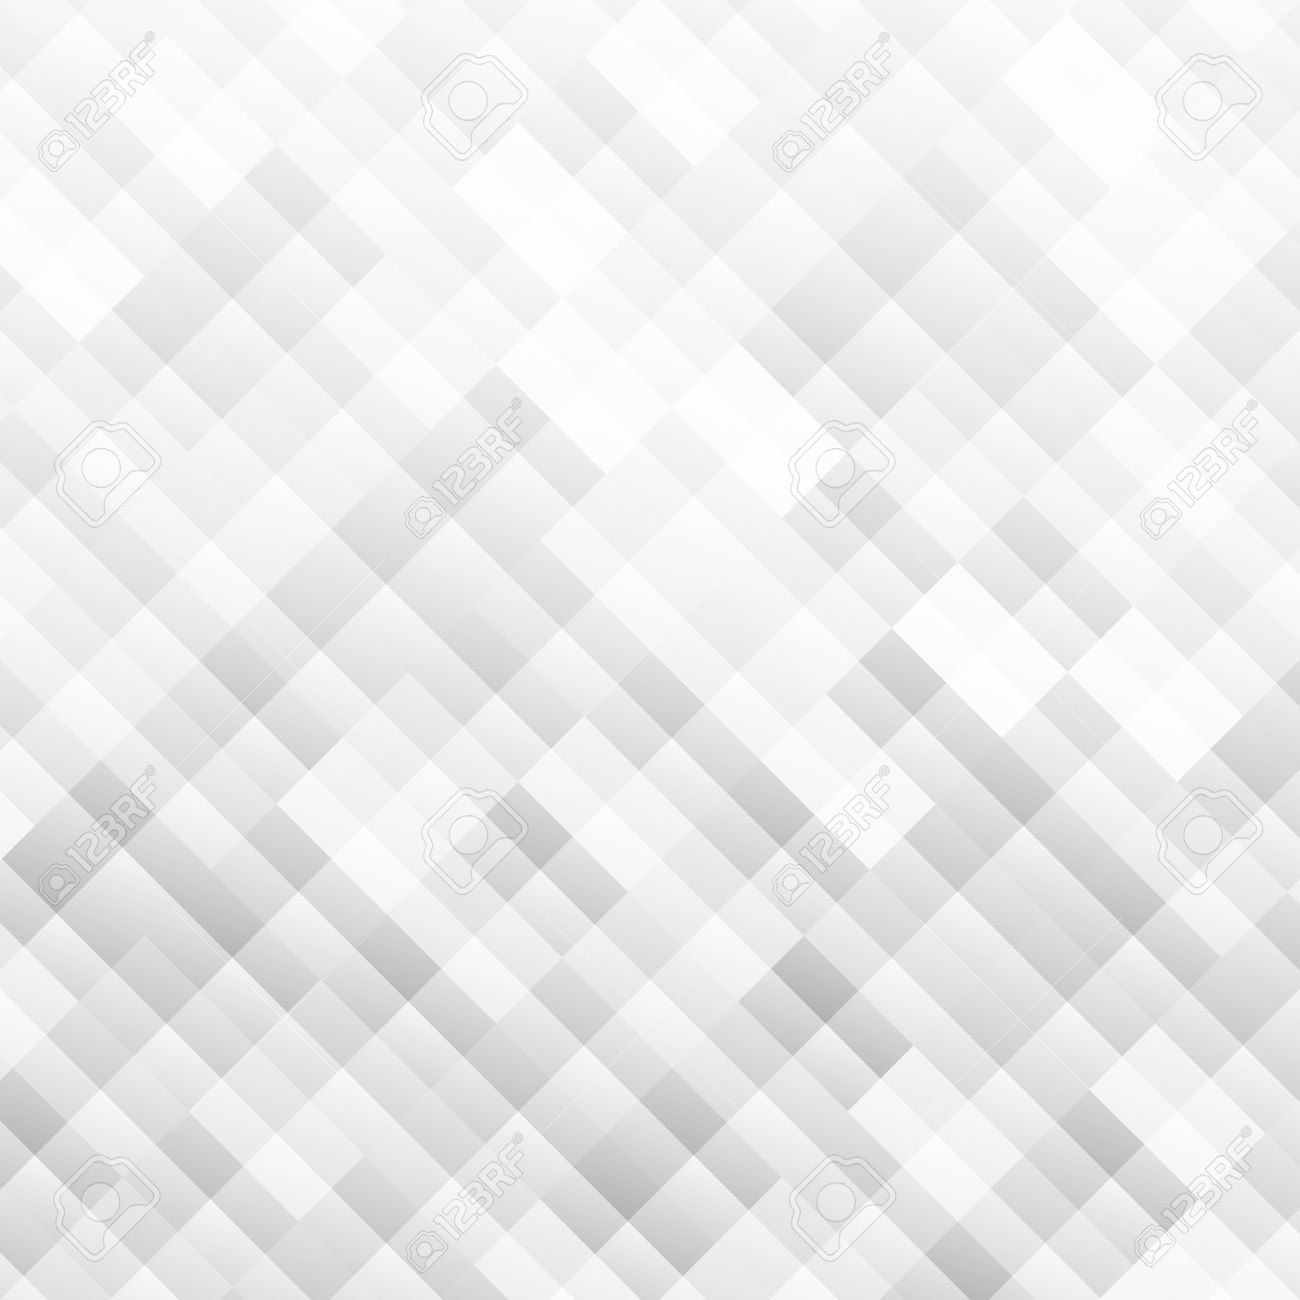 Background image transparency - Geometry Background Template For Style Design Used Opacity Mask And Transparency Layers Of Background